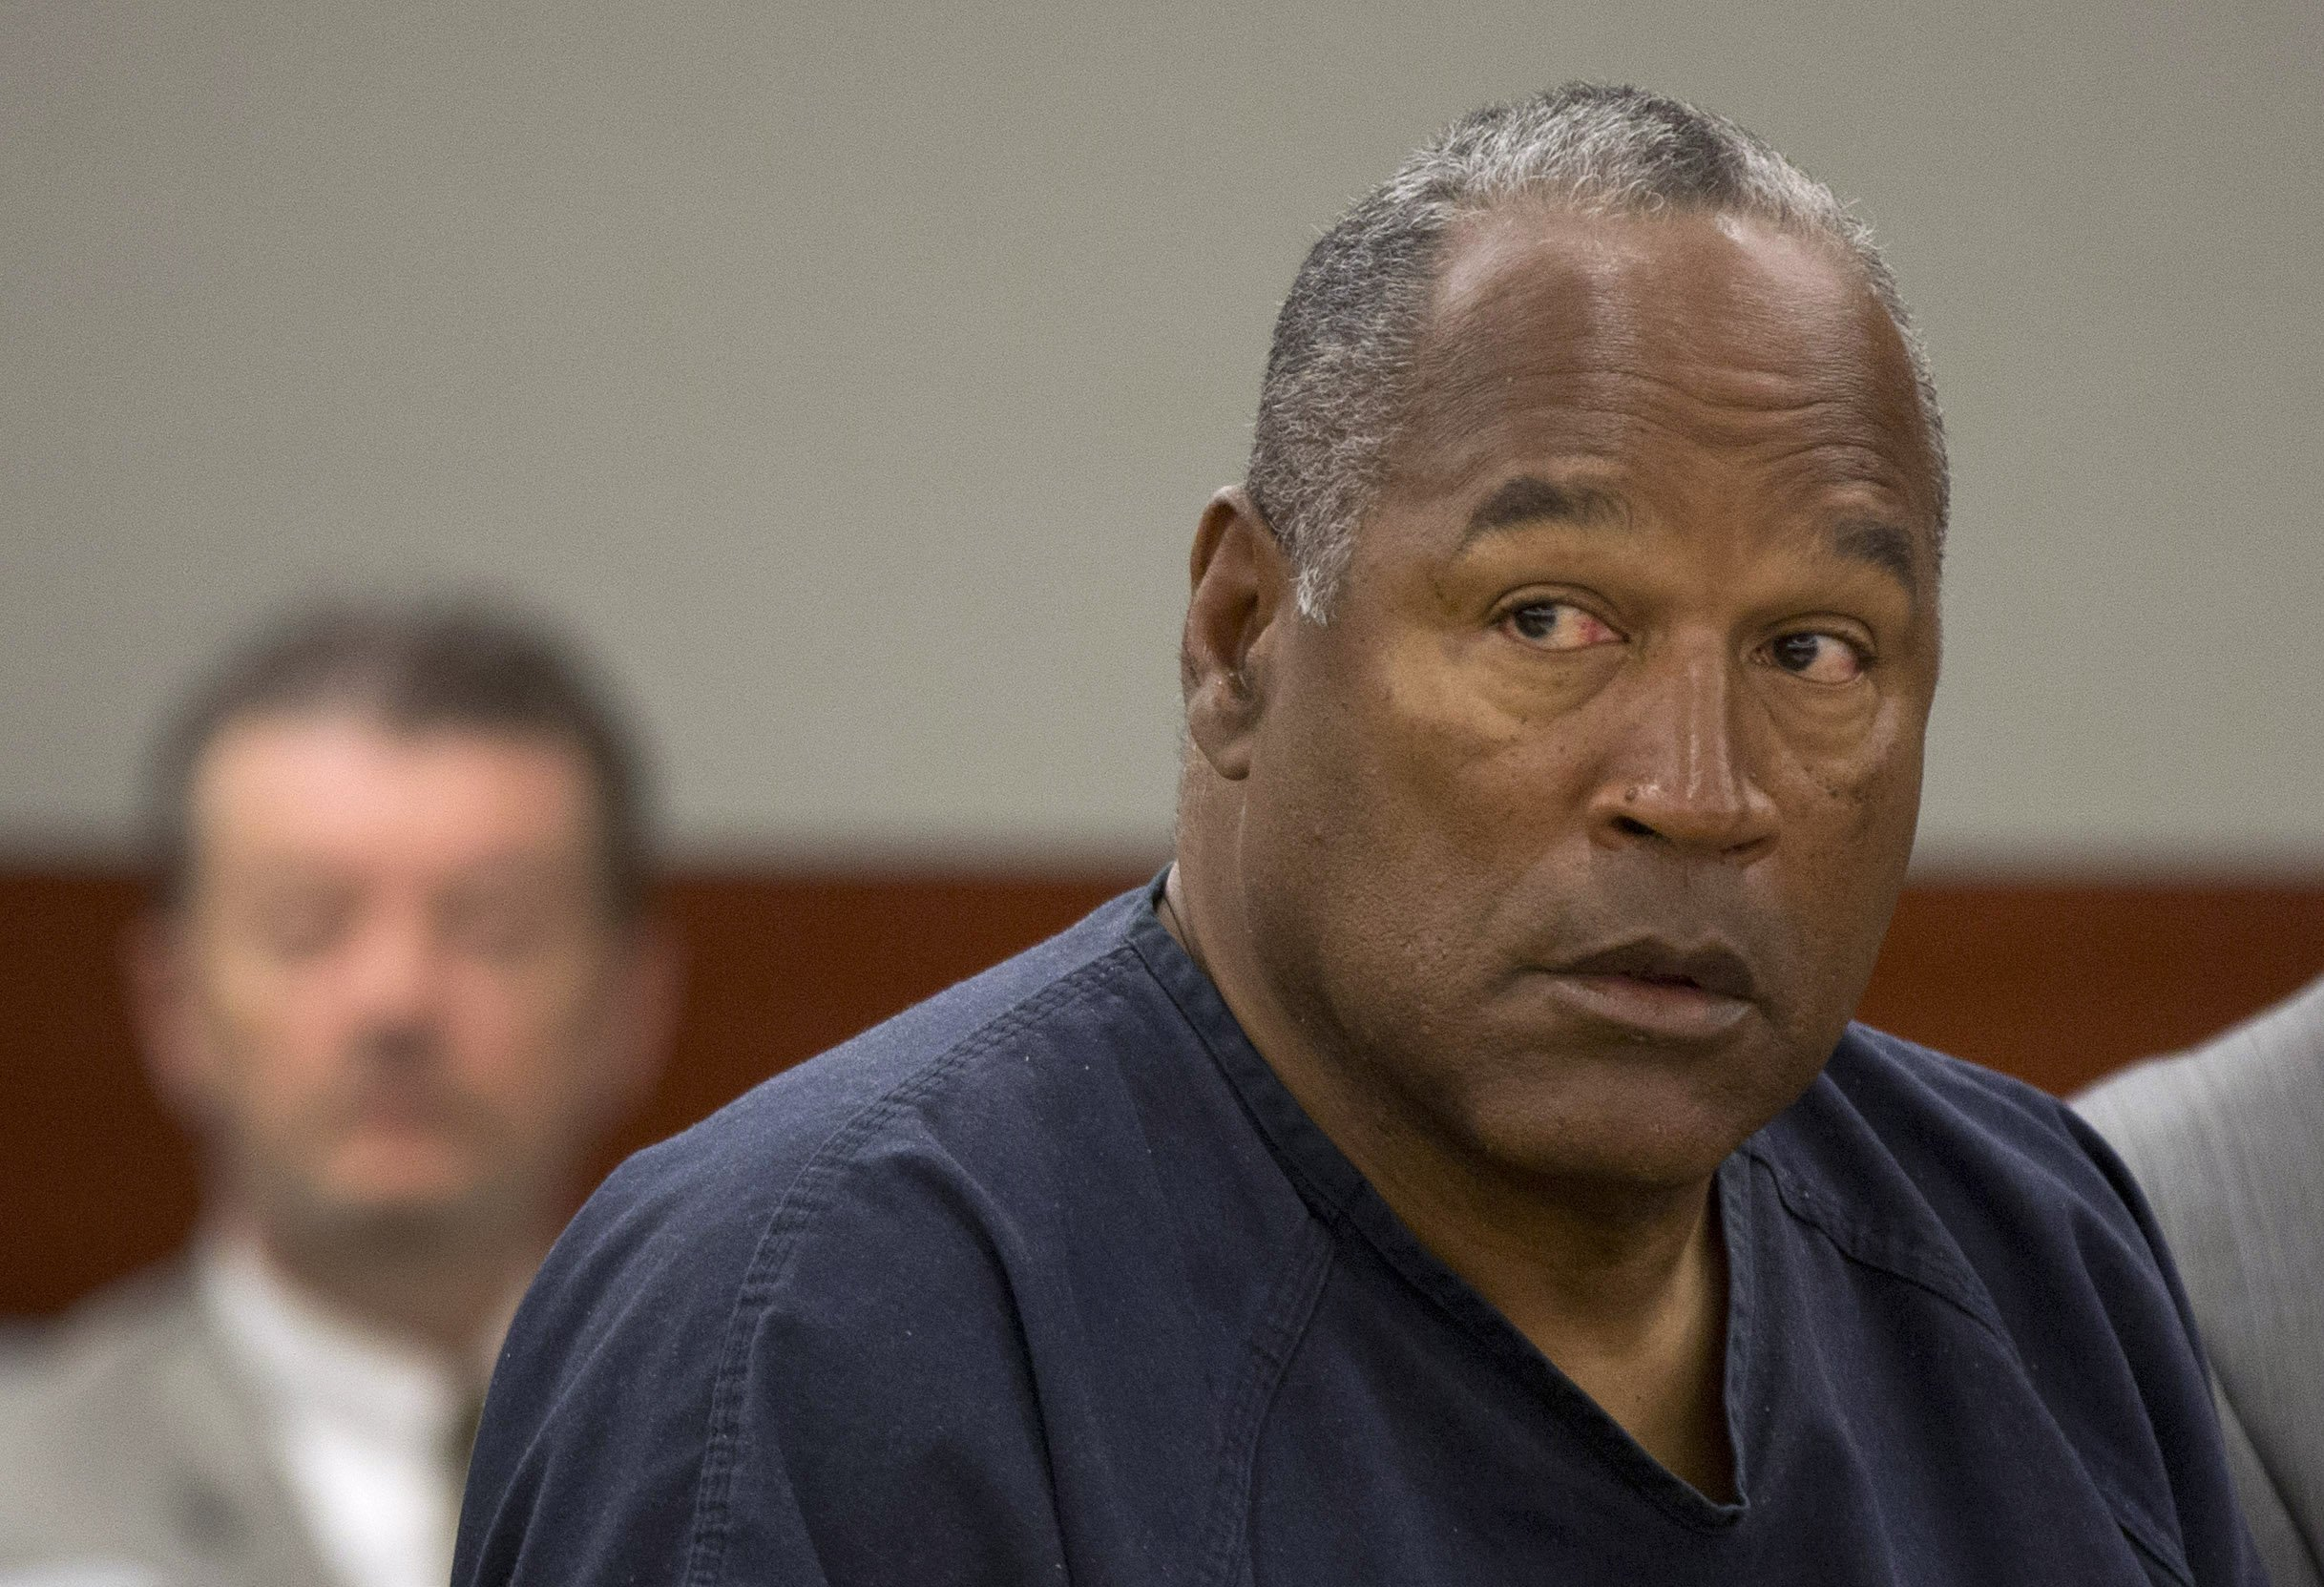 O.J Simpson during an evidentiary hearing in Clark County District Court on May 17, 2013 in Las Vegas, Nevada. | Photo: GettyImages